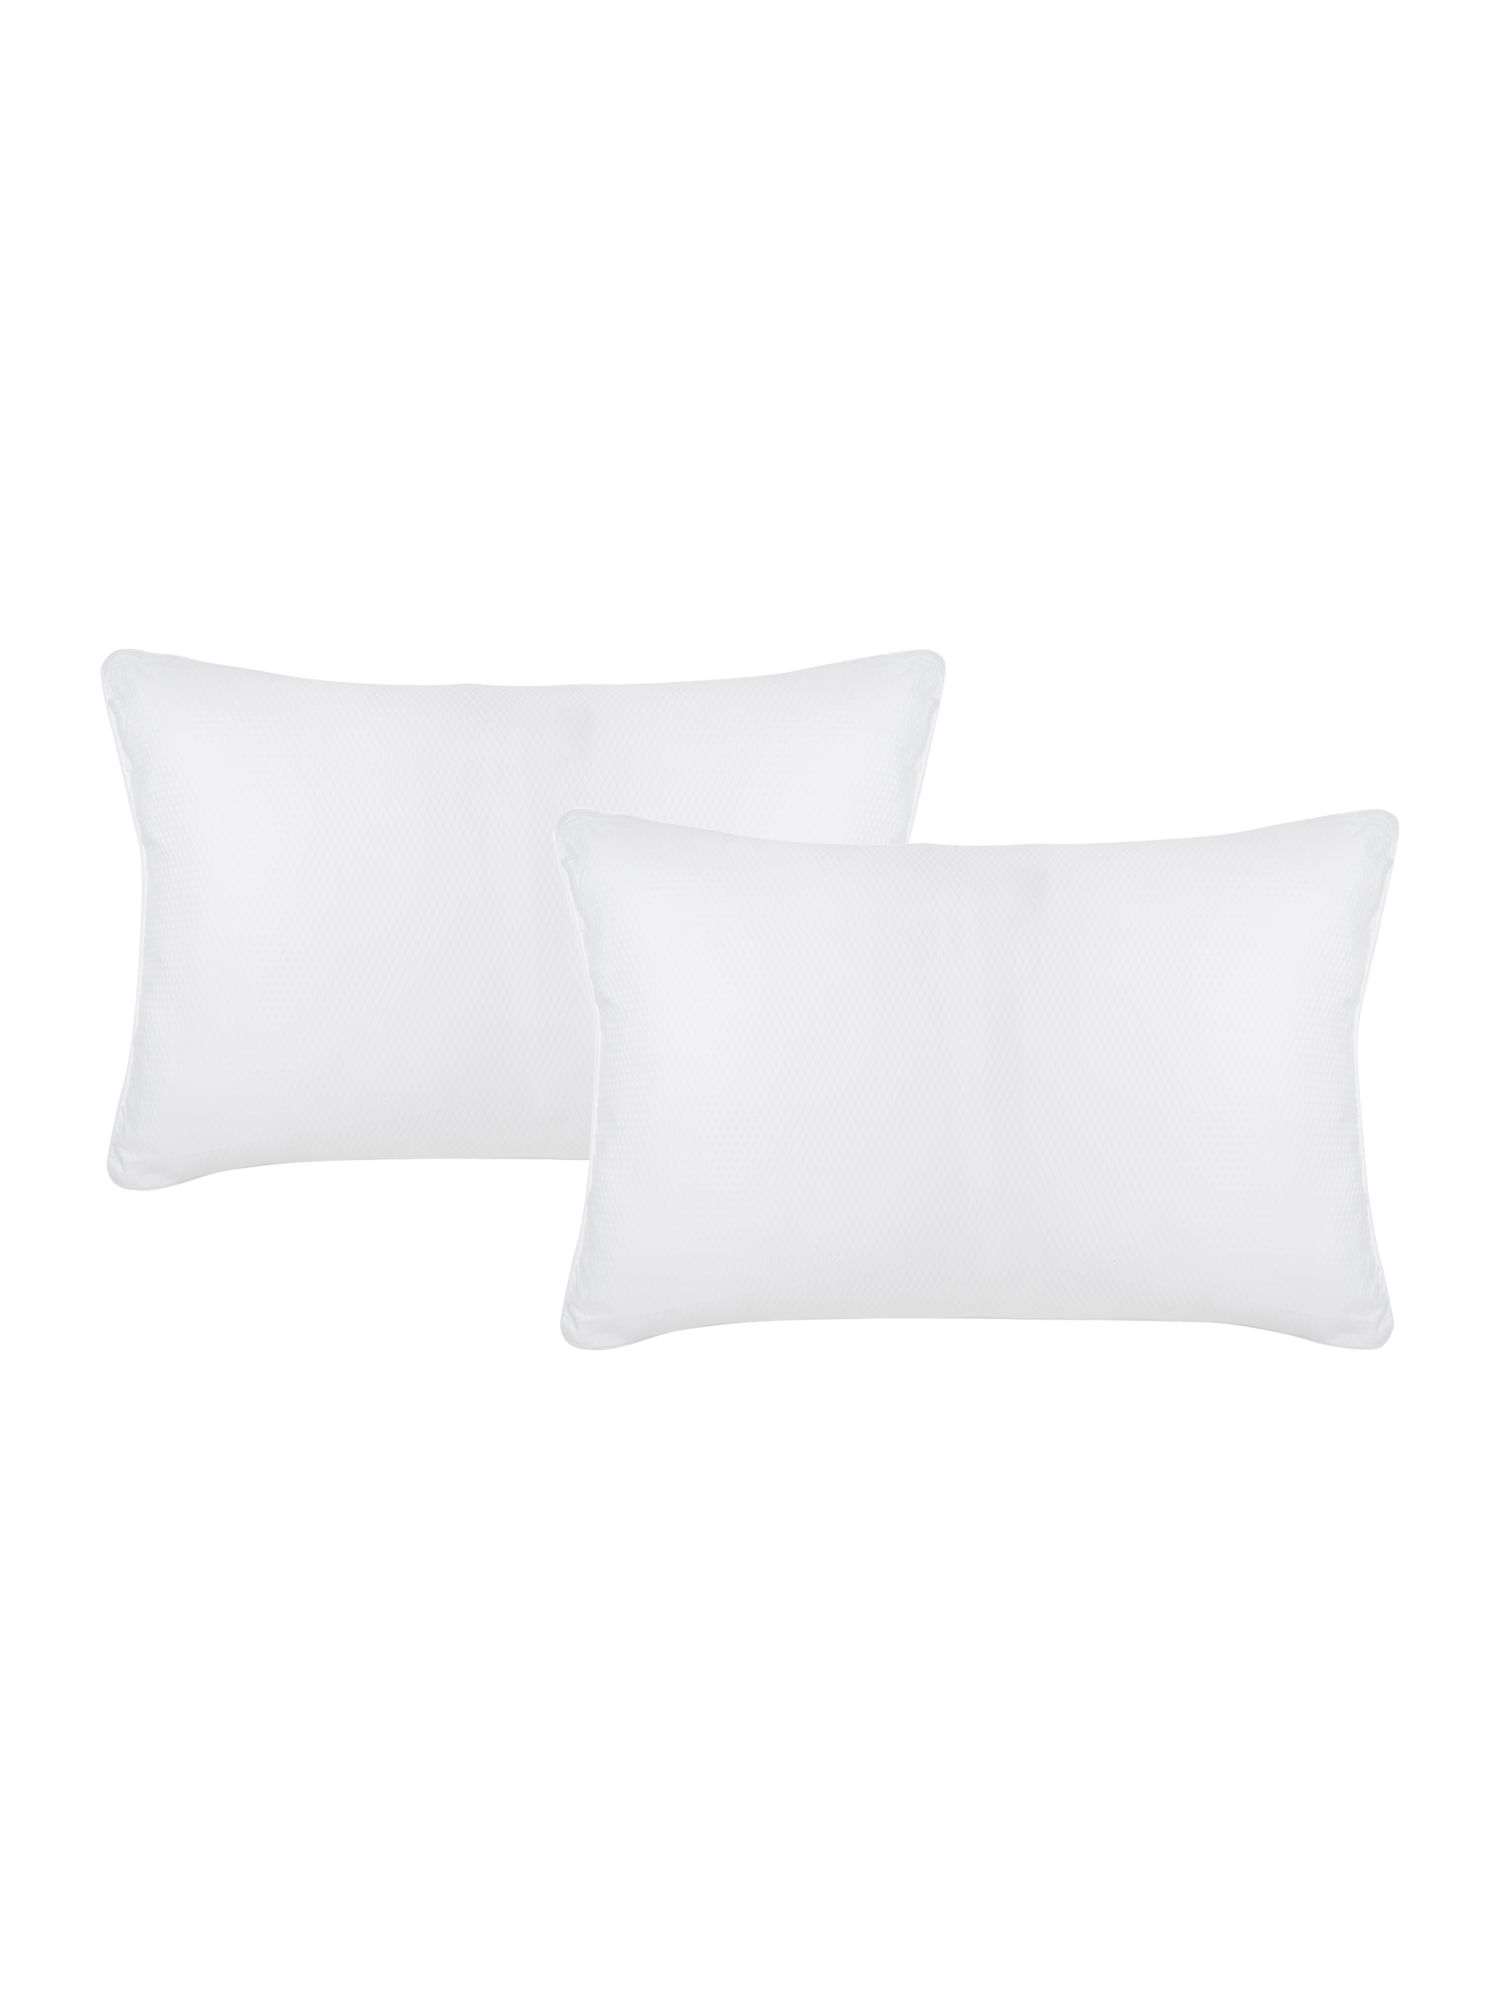 Touch of Silk pillow pair